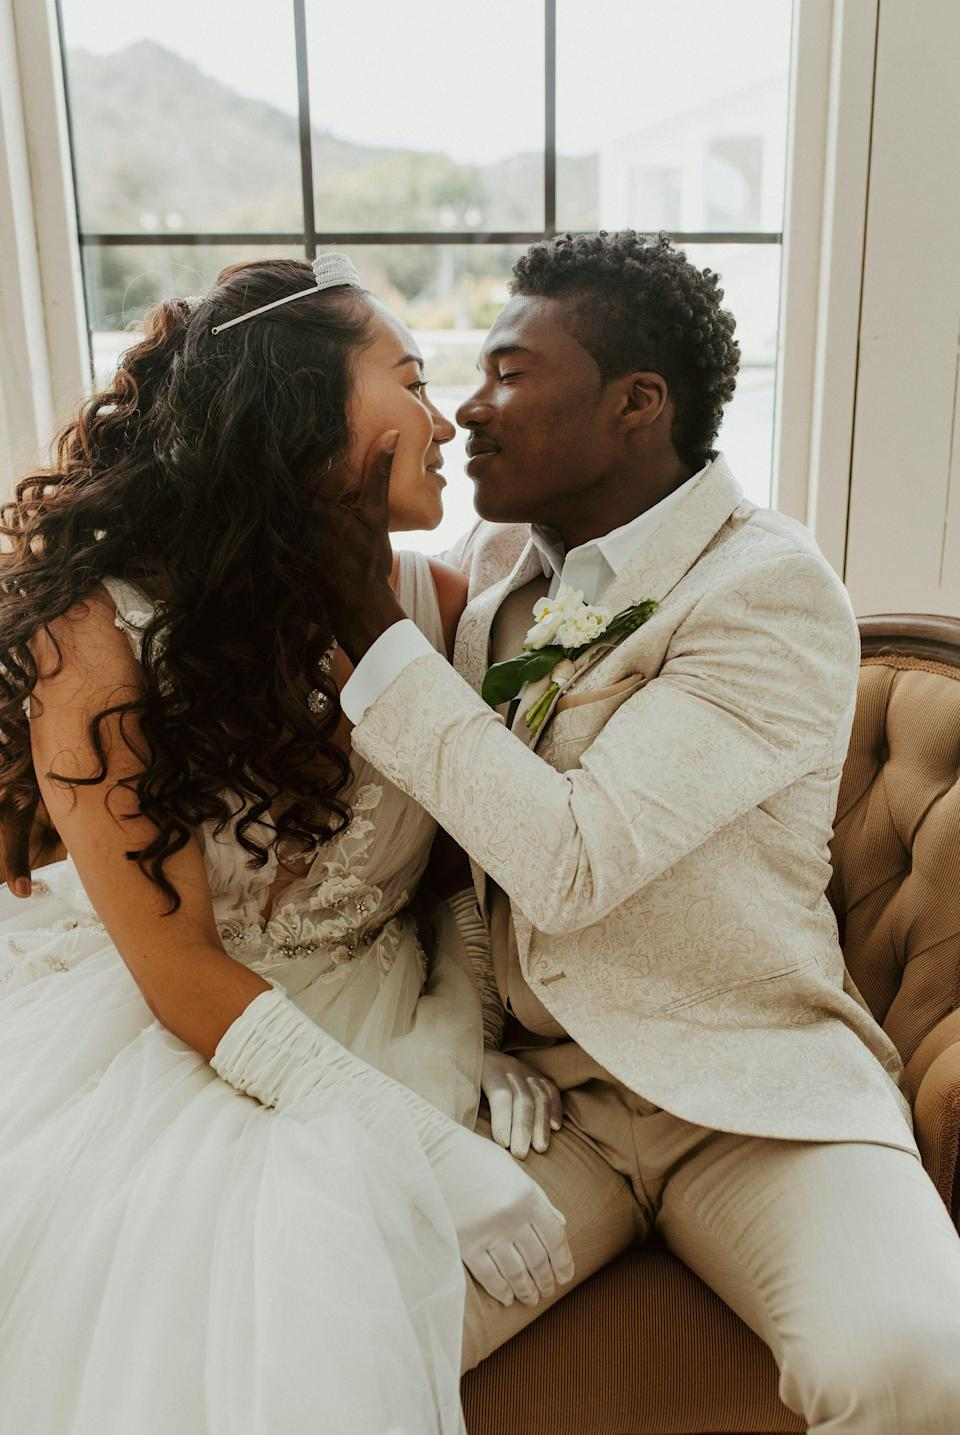 A groom caresses a bride's face as they look at each other and sit on a couch.